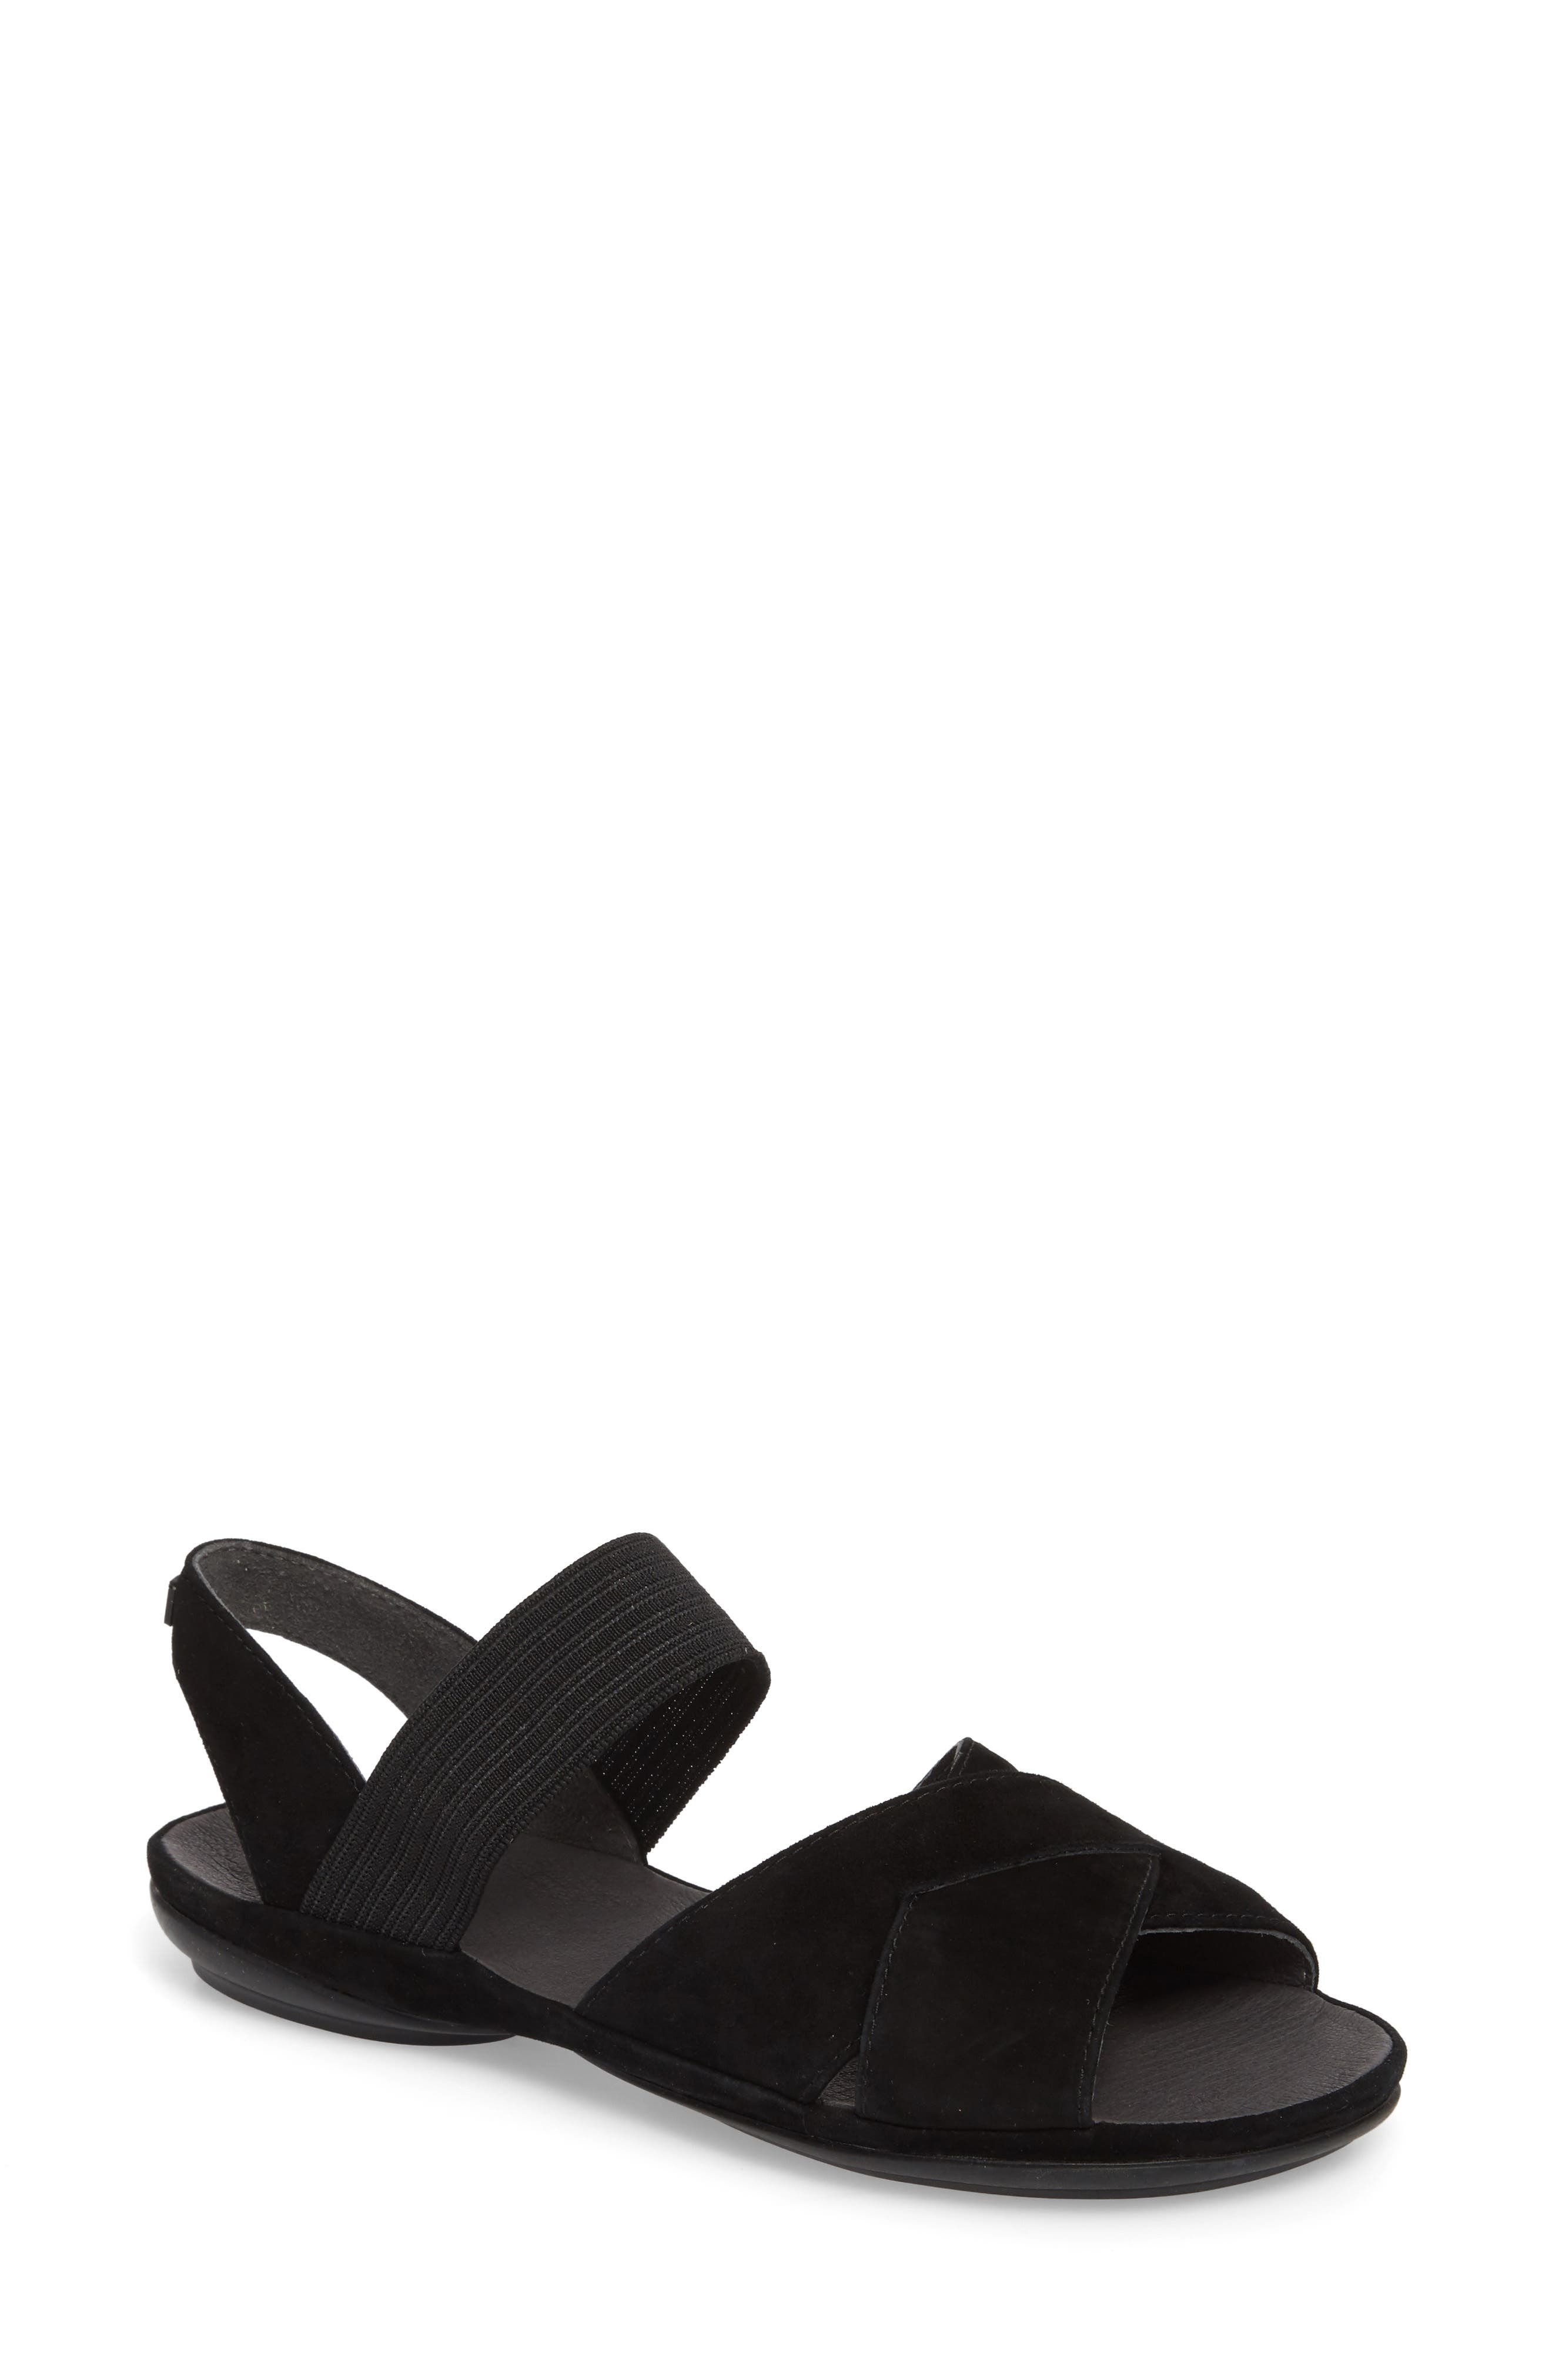 RIGHT NINA FLAT CROSS STRAP SANDAL